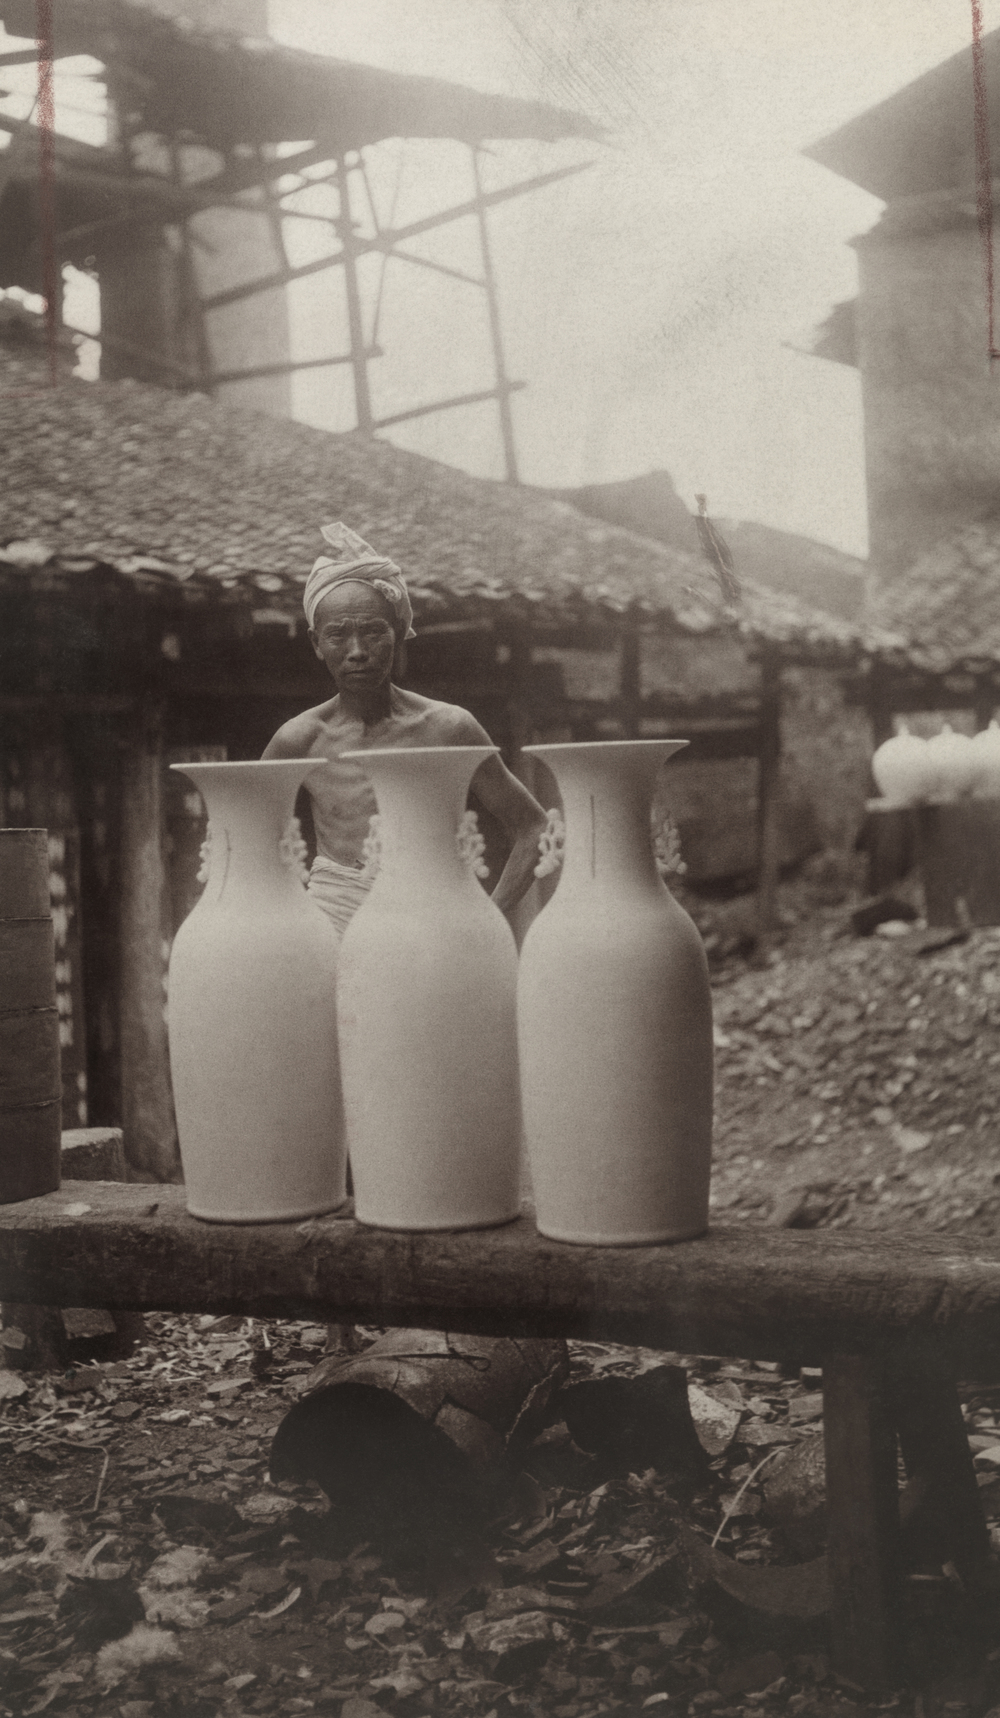 Potter in Jingdezhen, 1920 © National Geographic / Frank B. Lenz